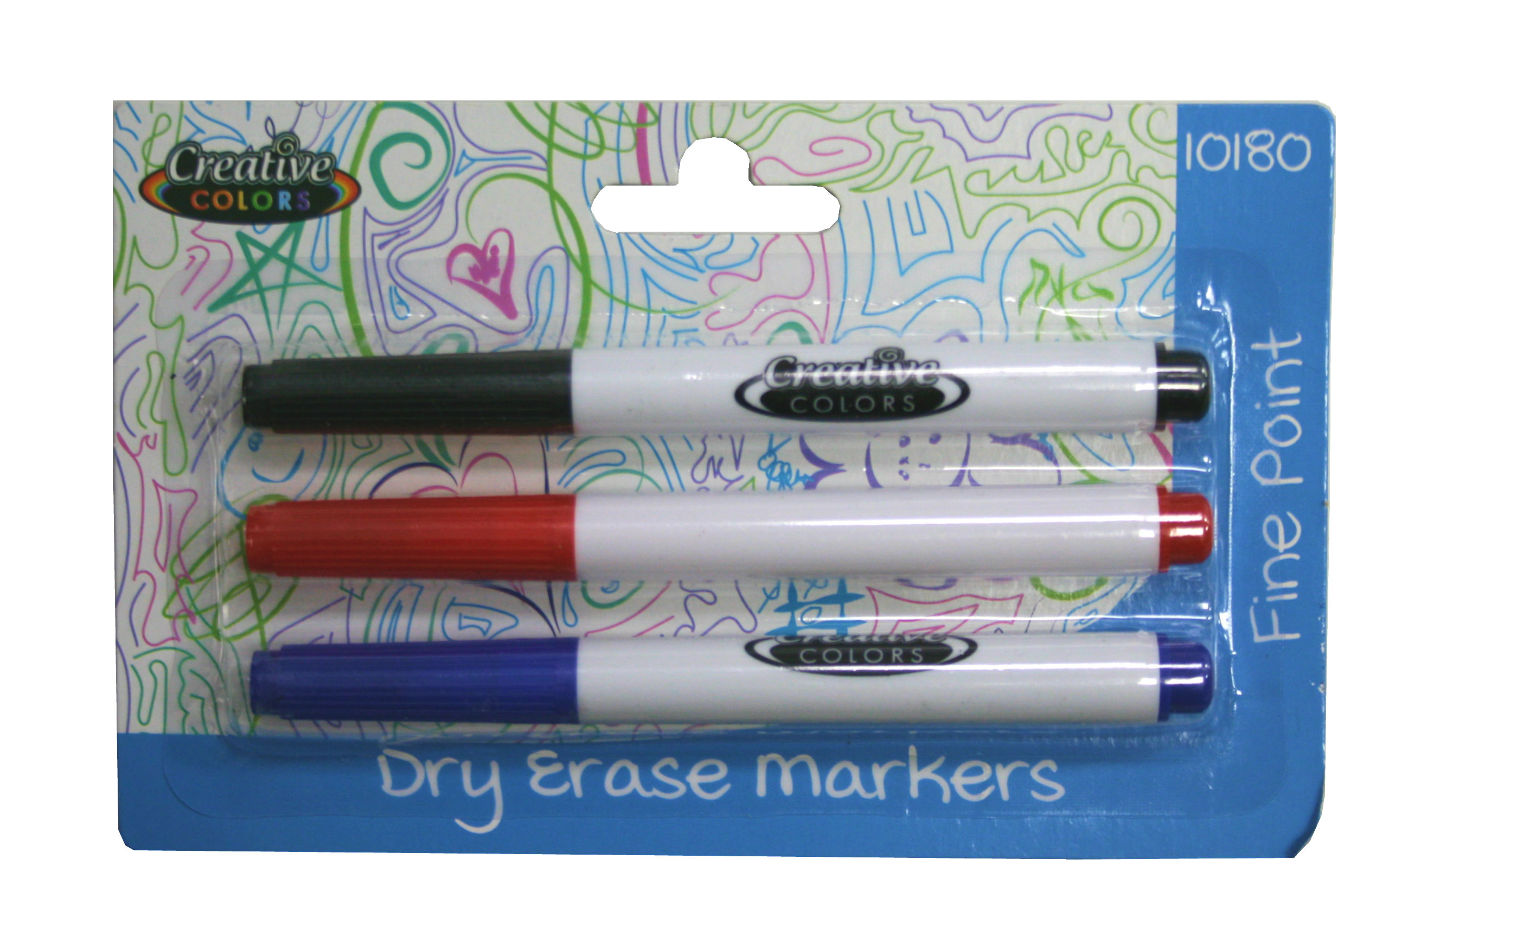 Creative Colors Dry Erase Markers 3ct [1940474]